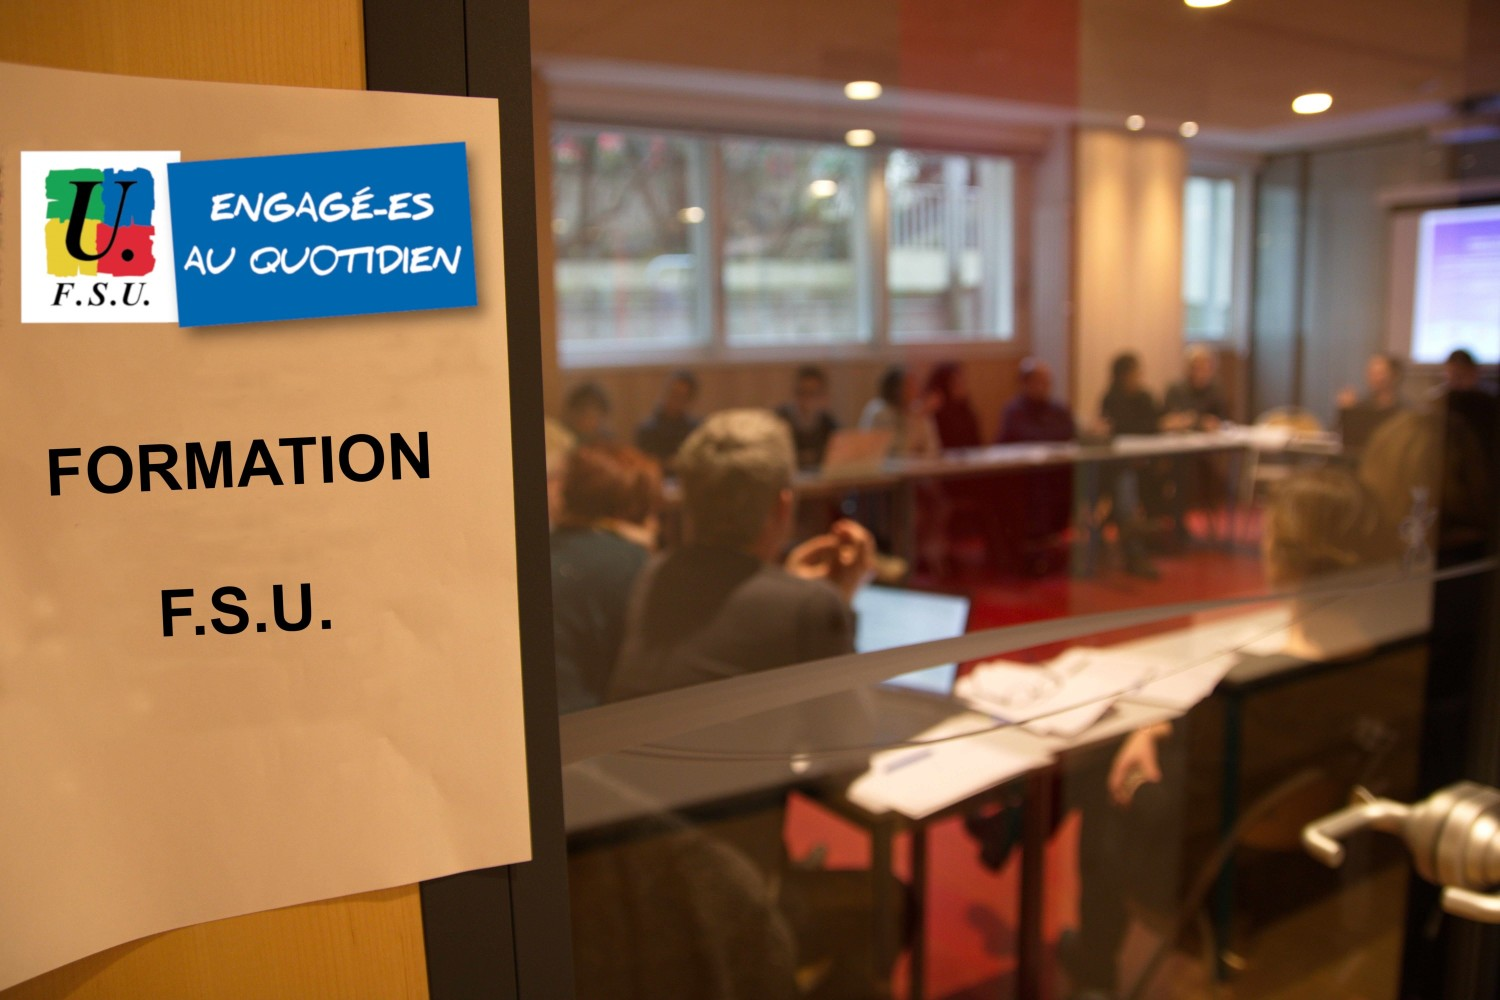 COLLOQUE EDUCATION PRIORITAIRE - 12 rue Cabanis 75014 Paris